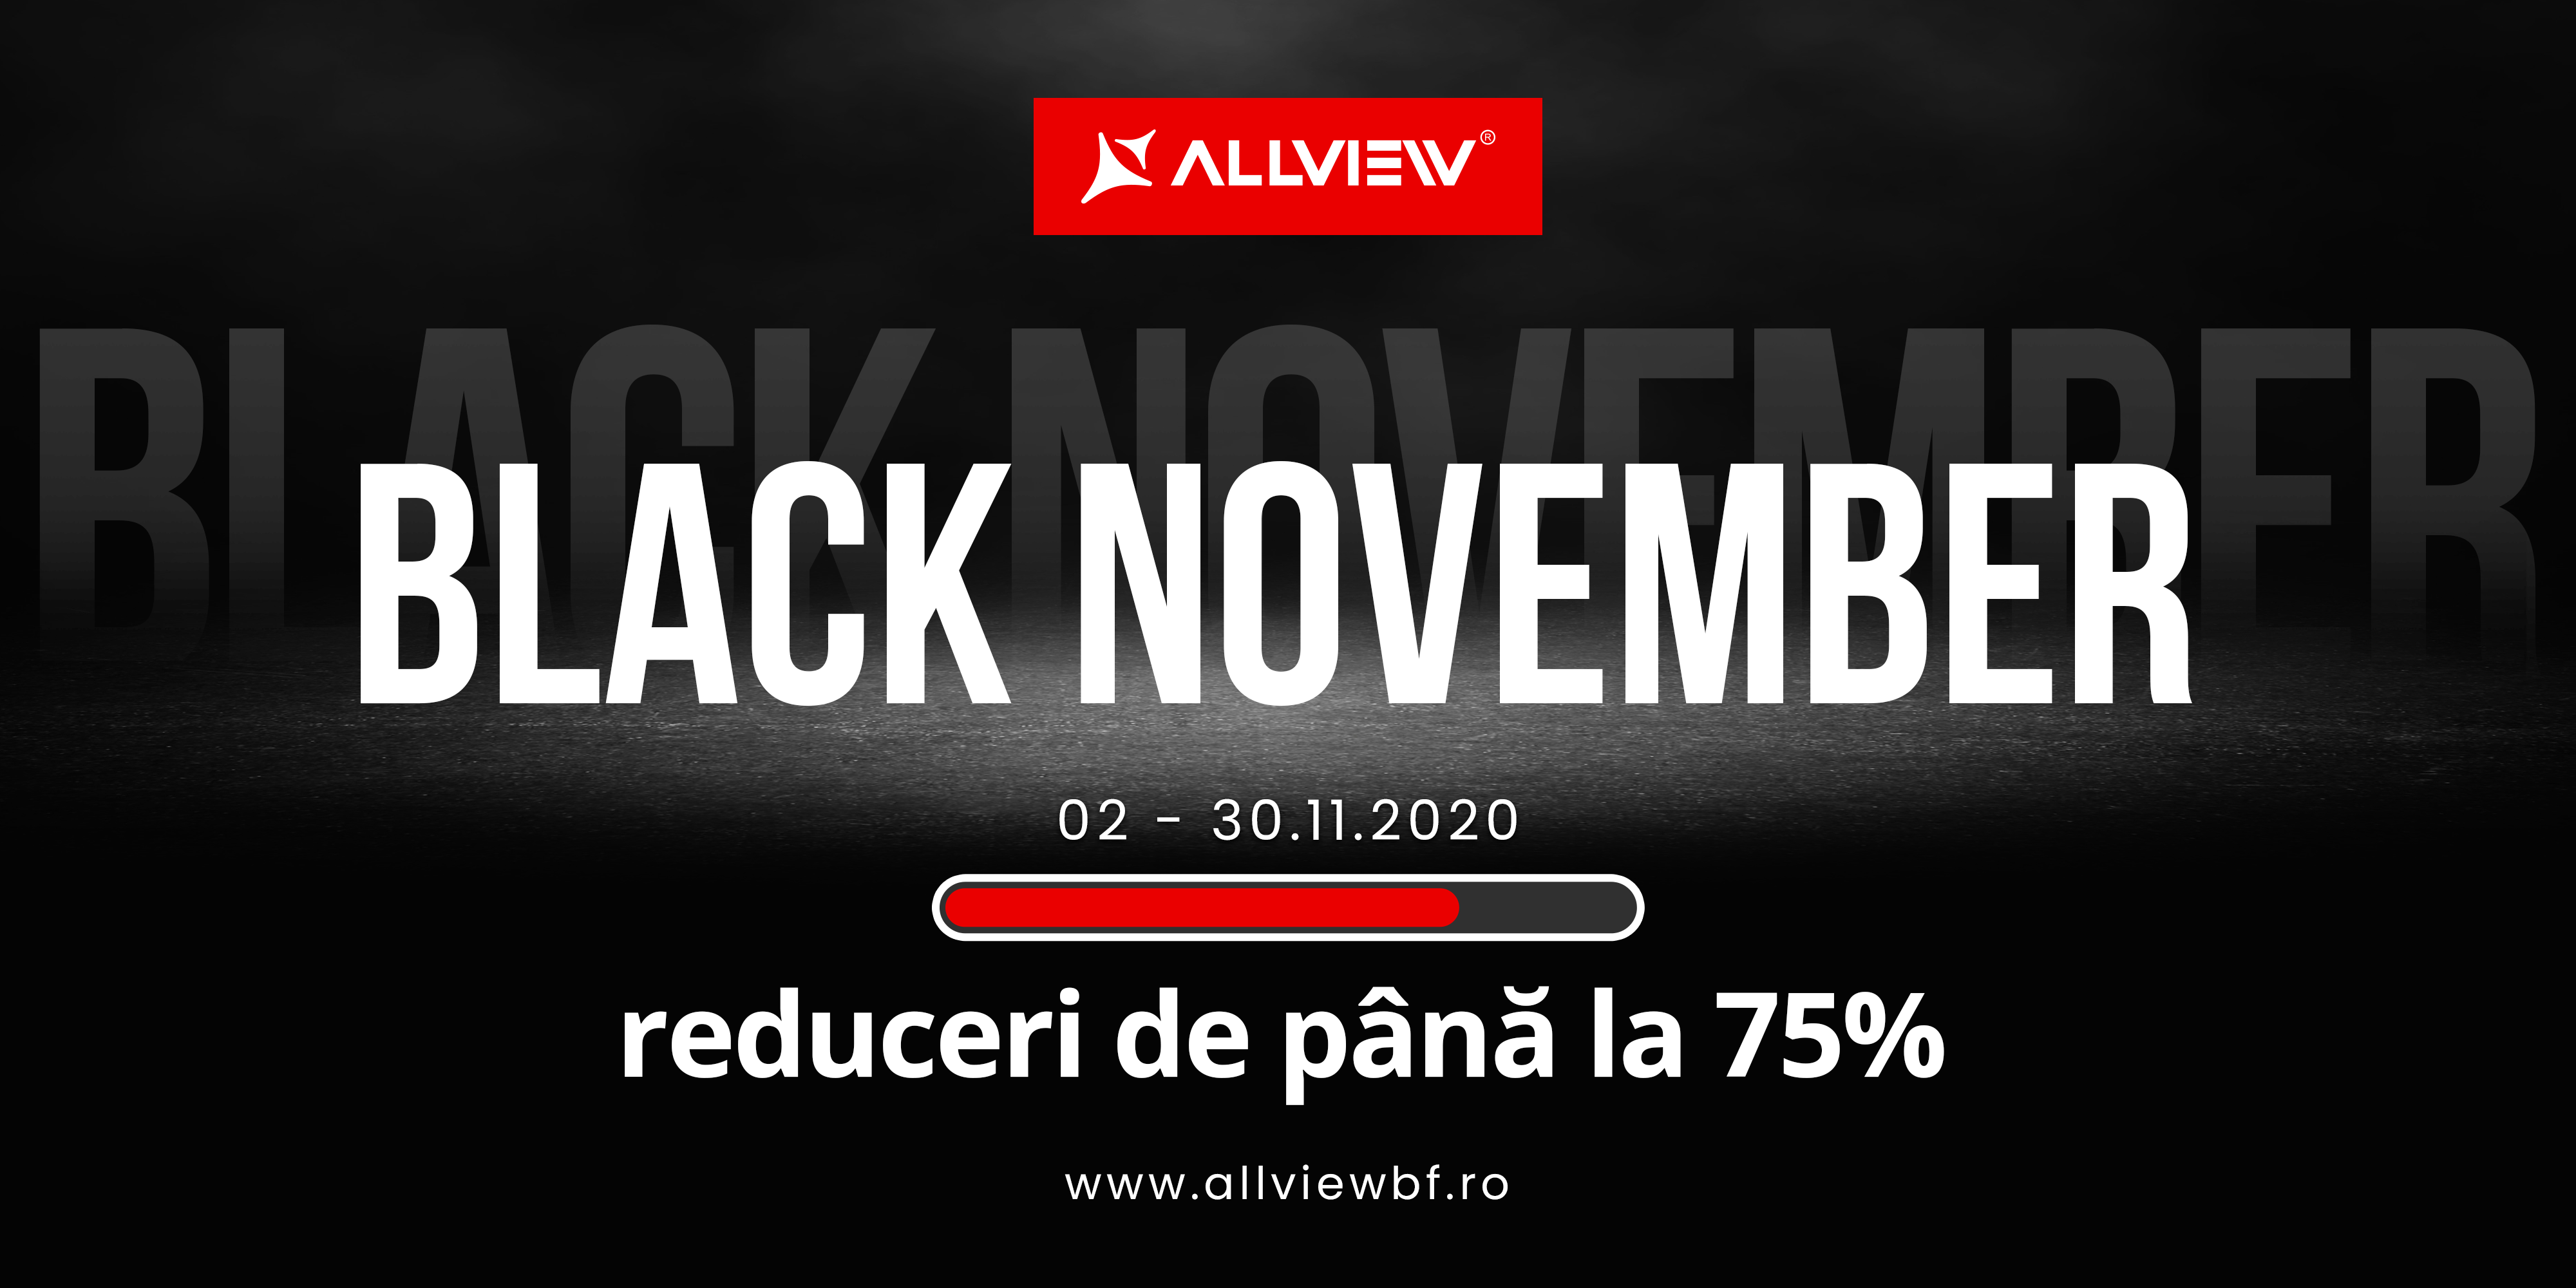 Allview Black November 2020